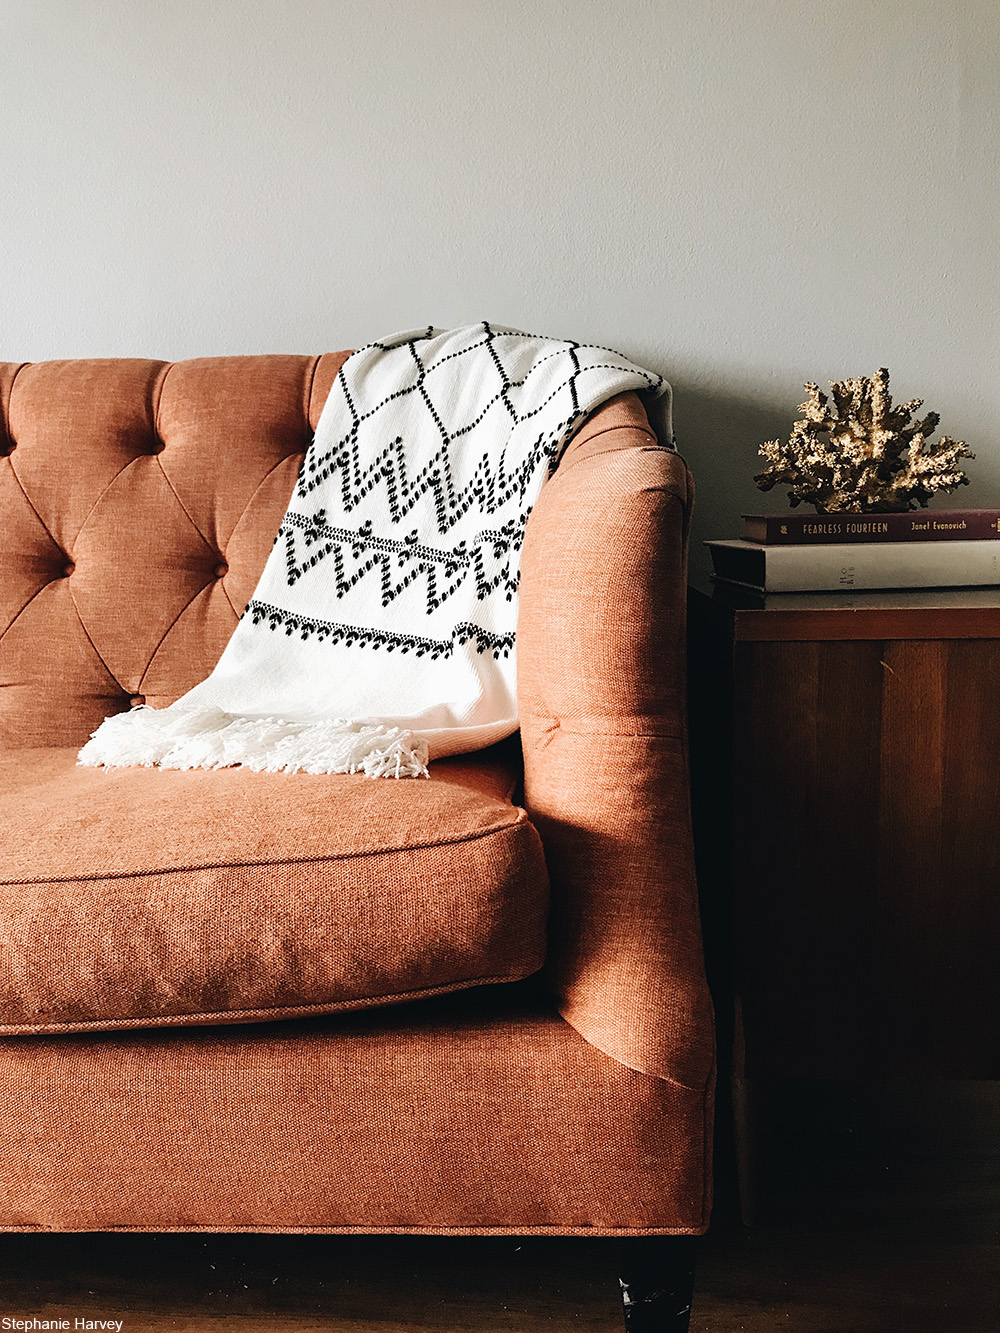 coral tufted sofa against a wall